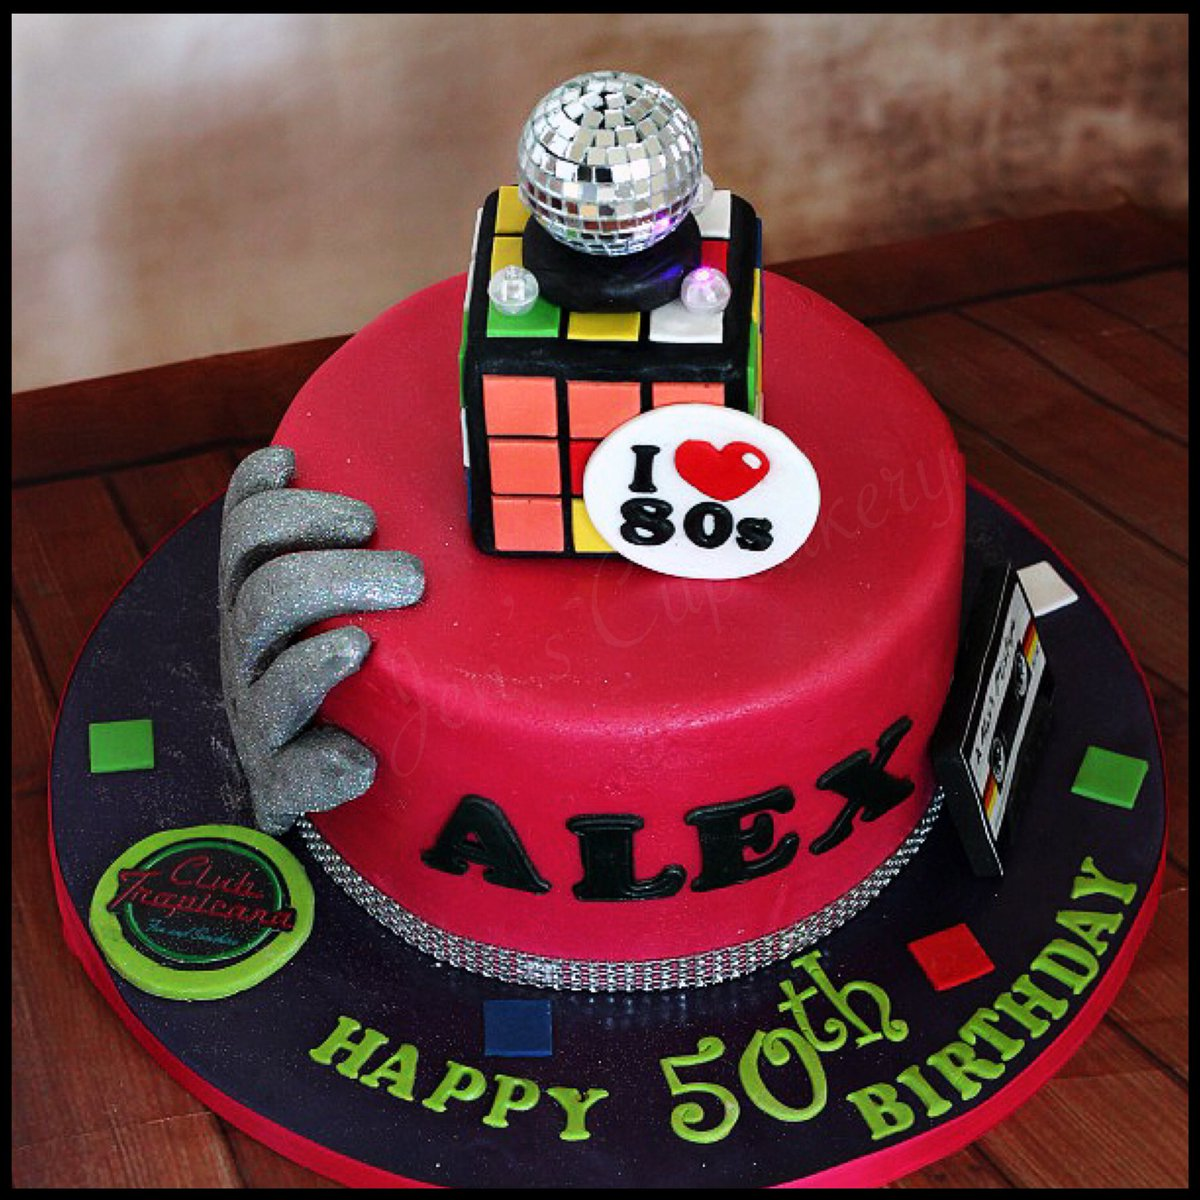 Awesome Jenjenscupcakery On Twitter 80S Themed Birthday Cake 80S Disco Funny Birthday Cards Online Barepcheapnameinfo